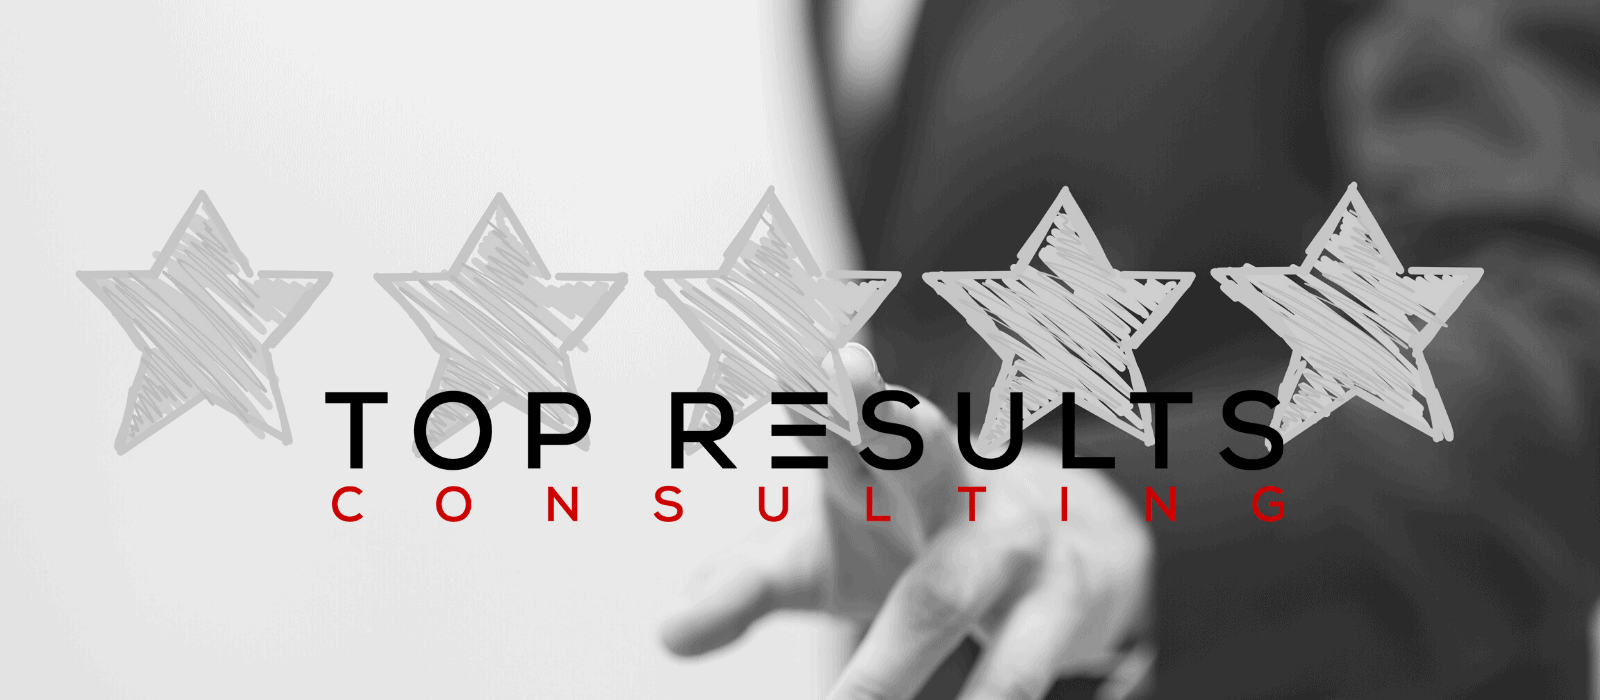 Five Starts Top Results Consulting